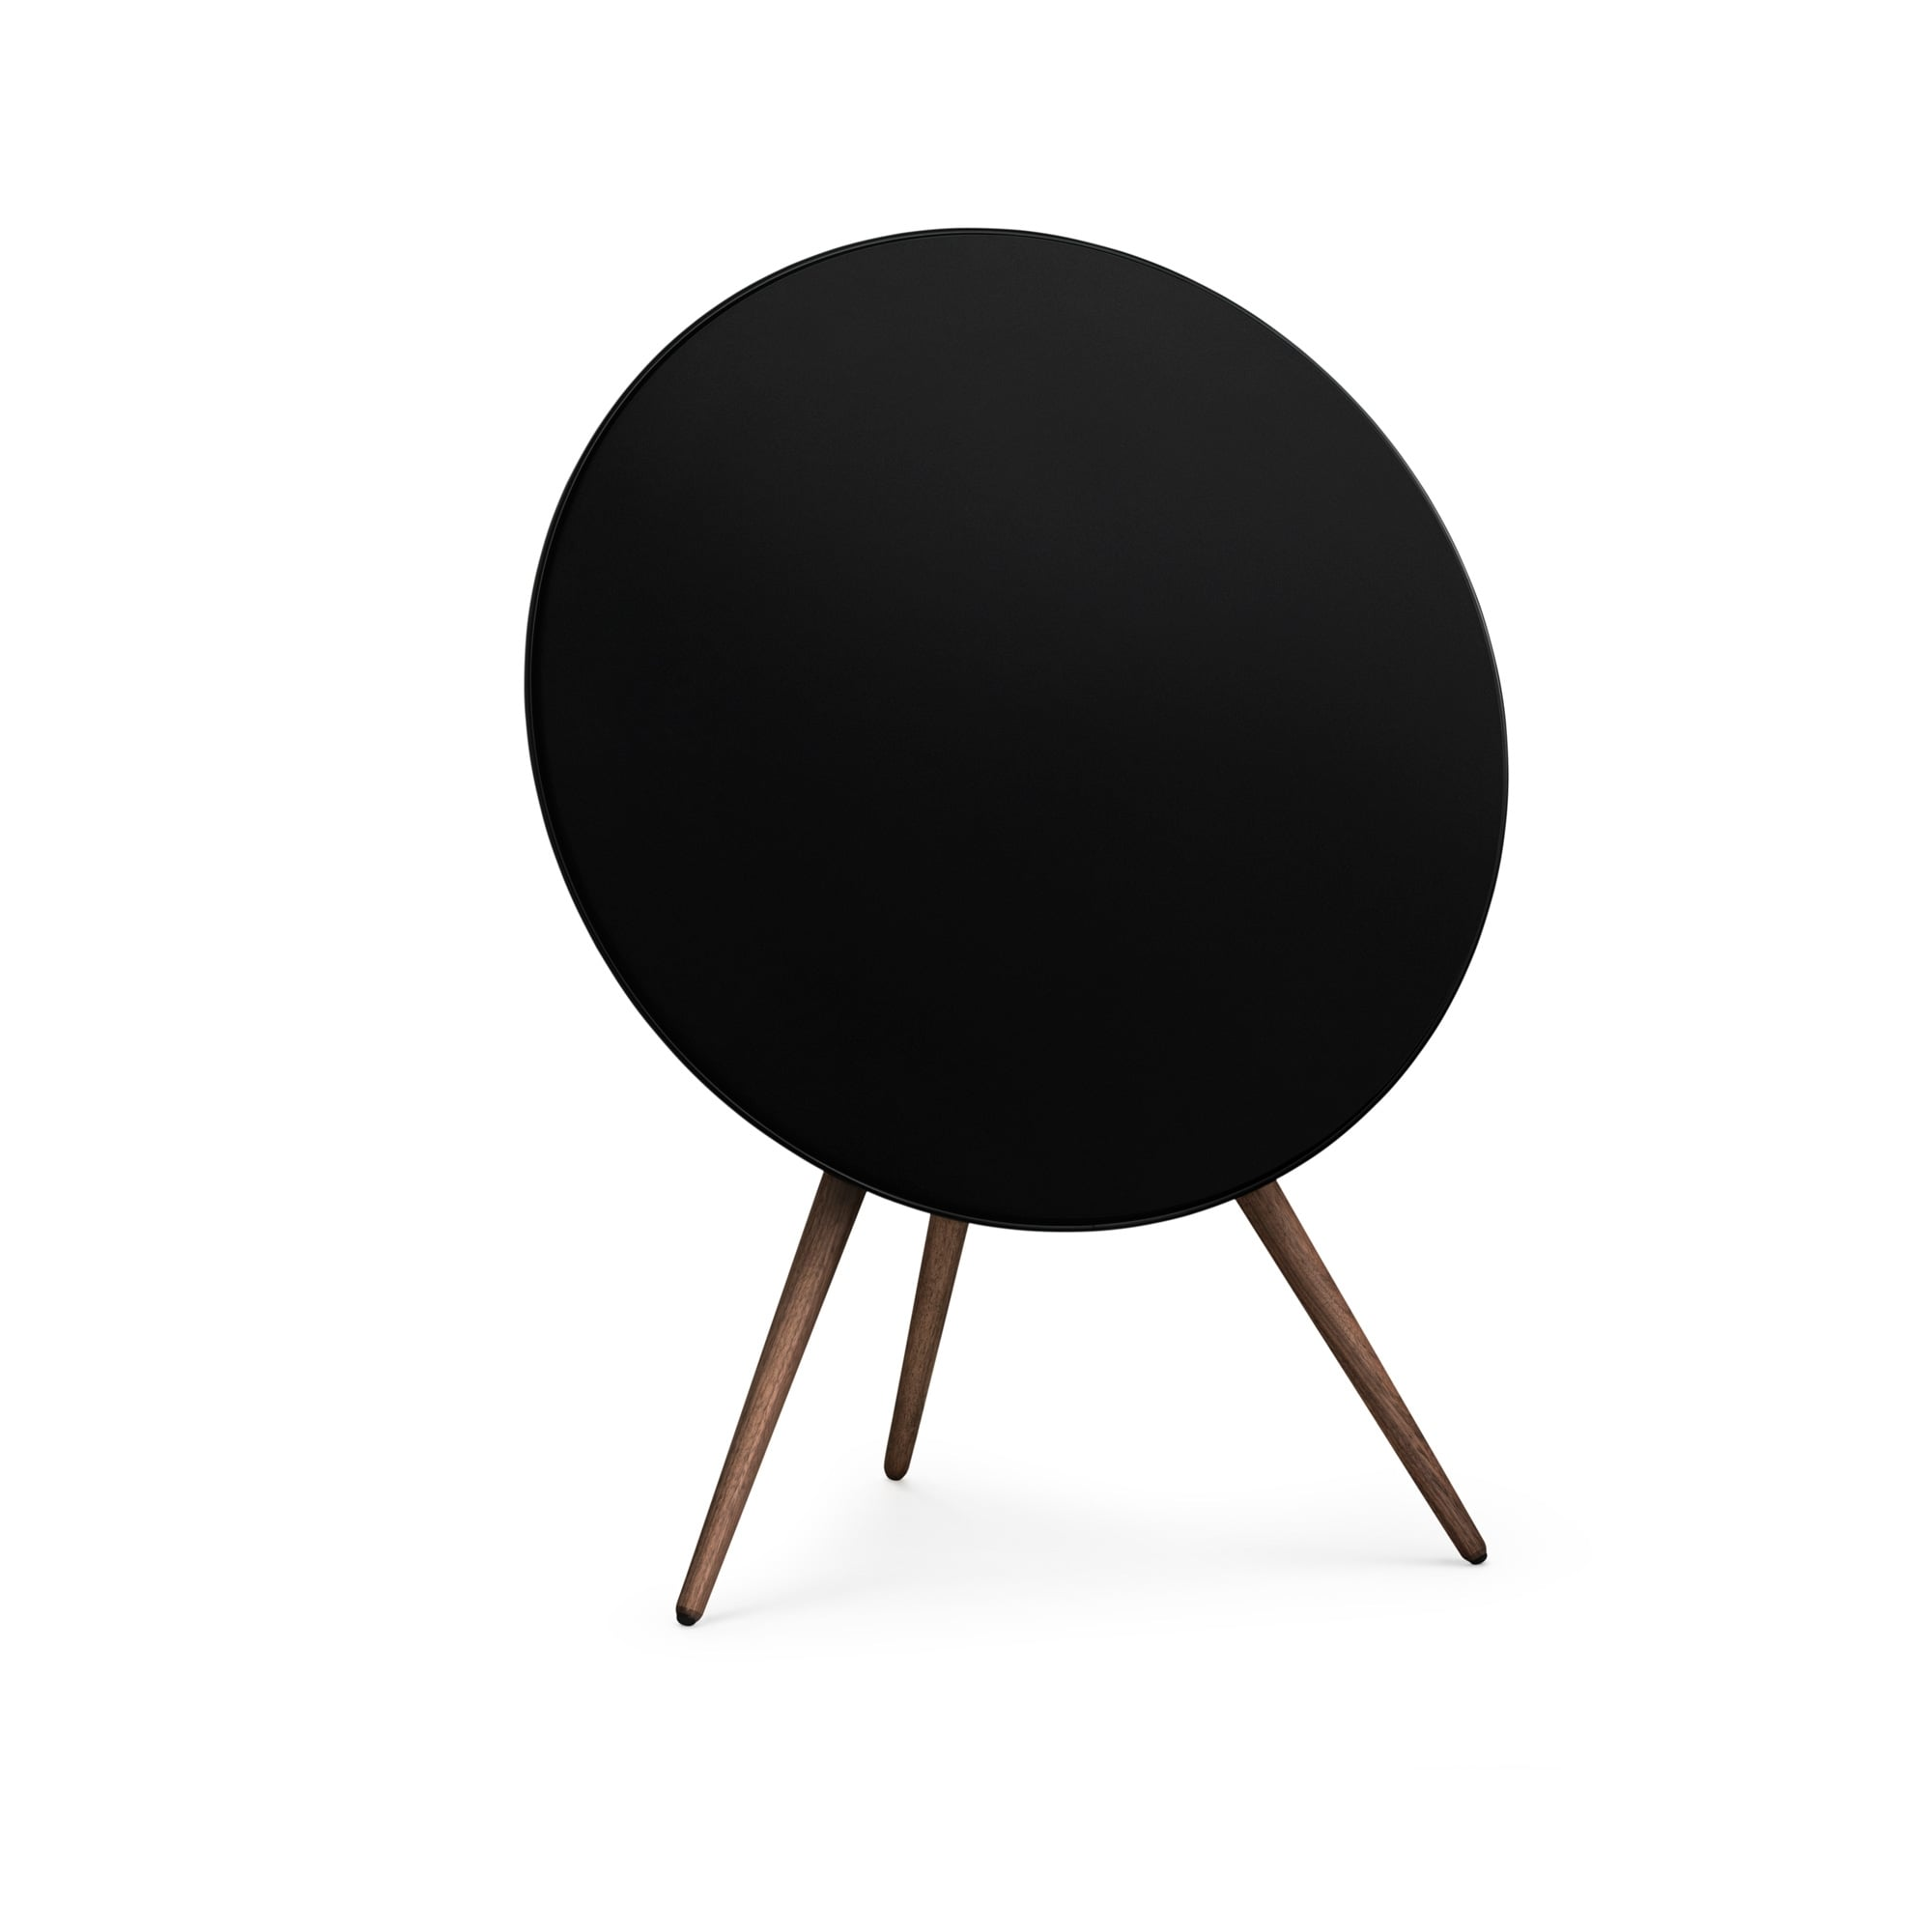 beoplay a9 new 4th generation speaker - black